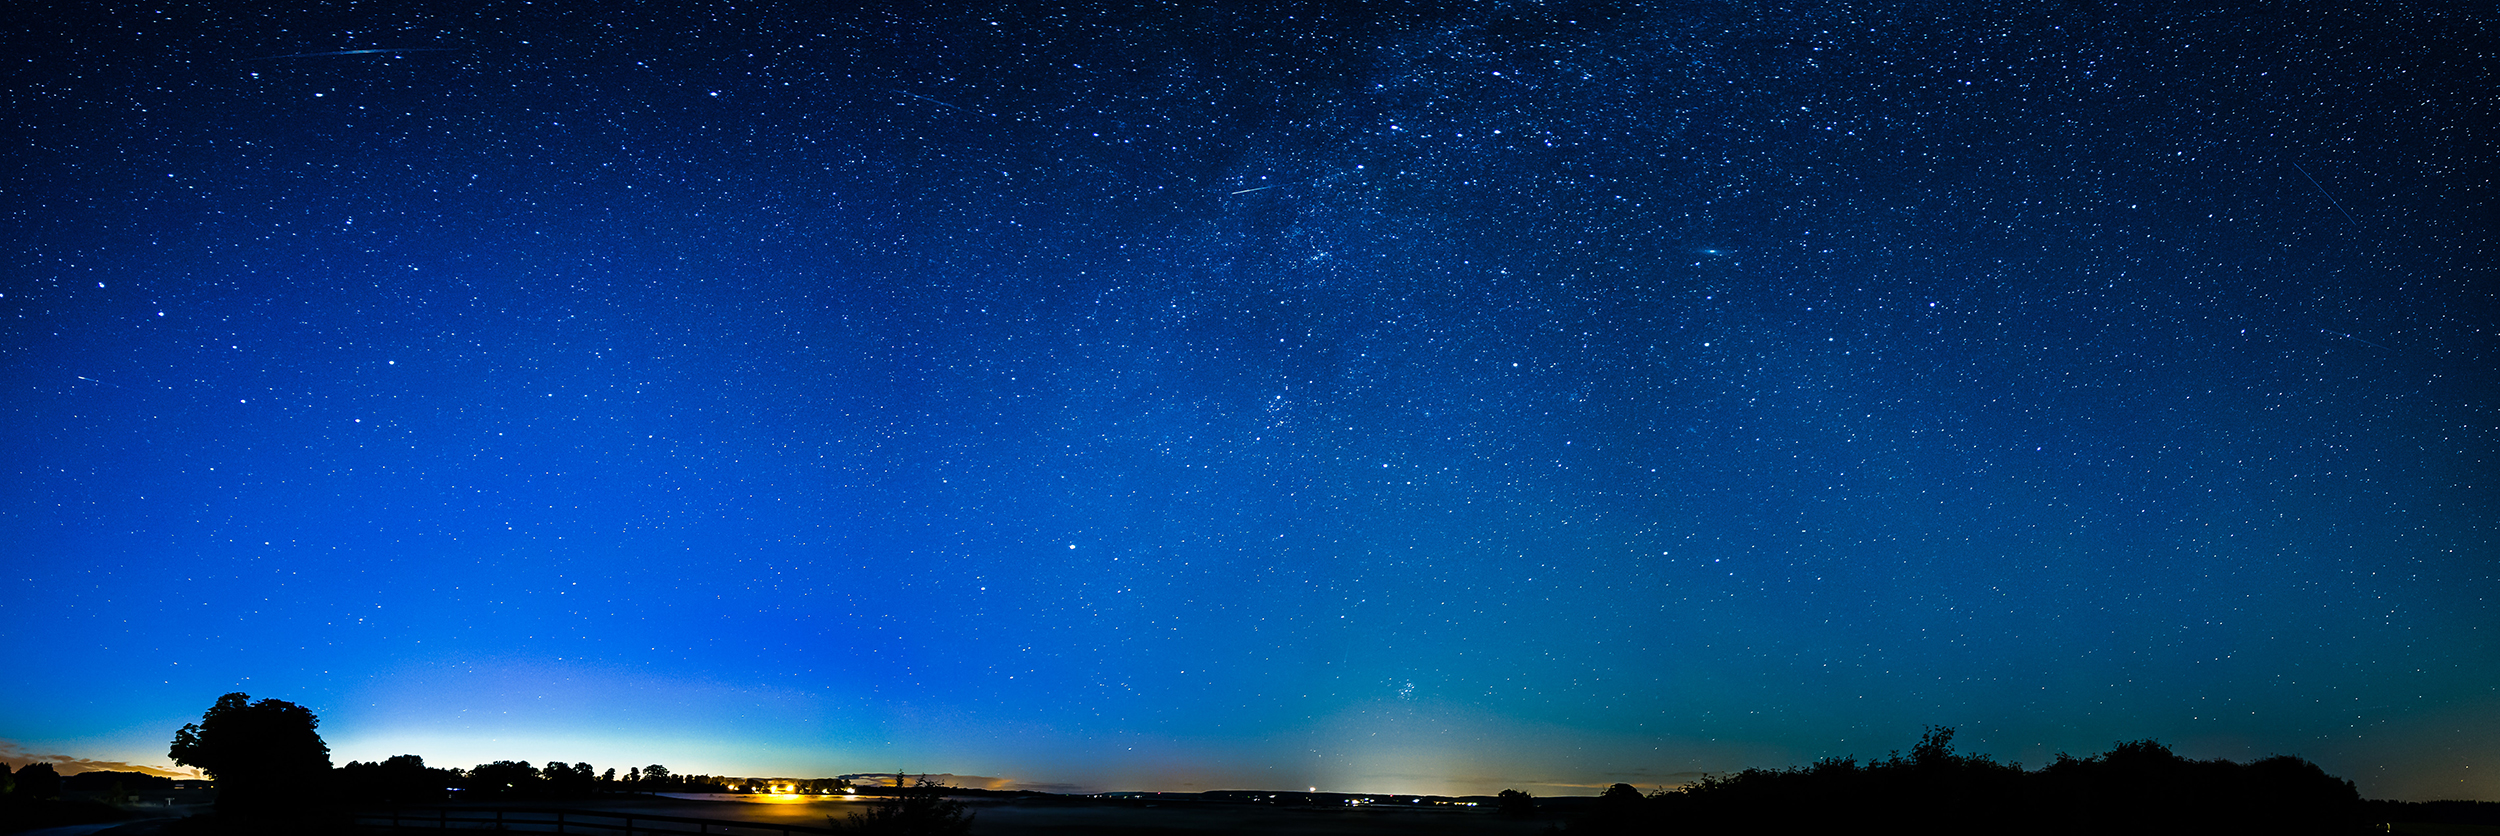 astronomy-blue-bright-340901